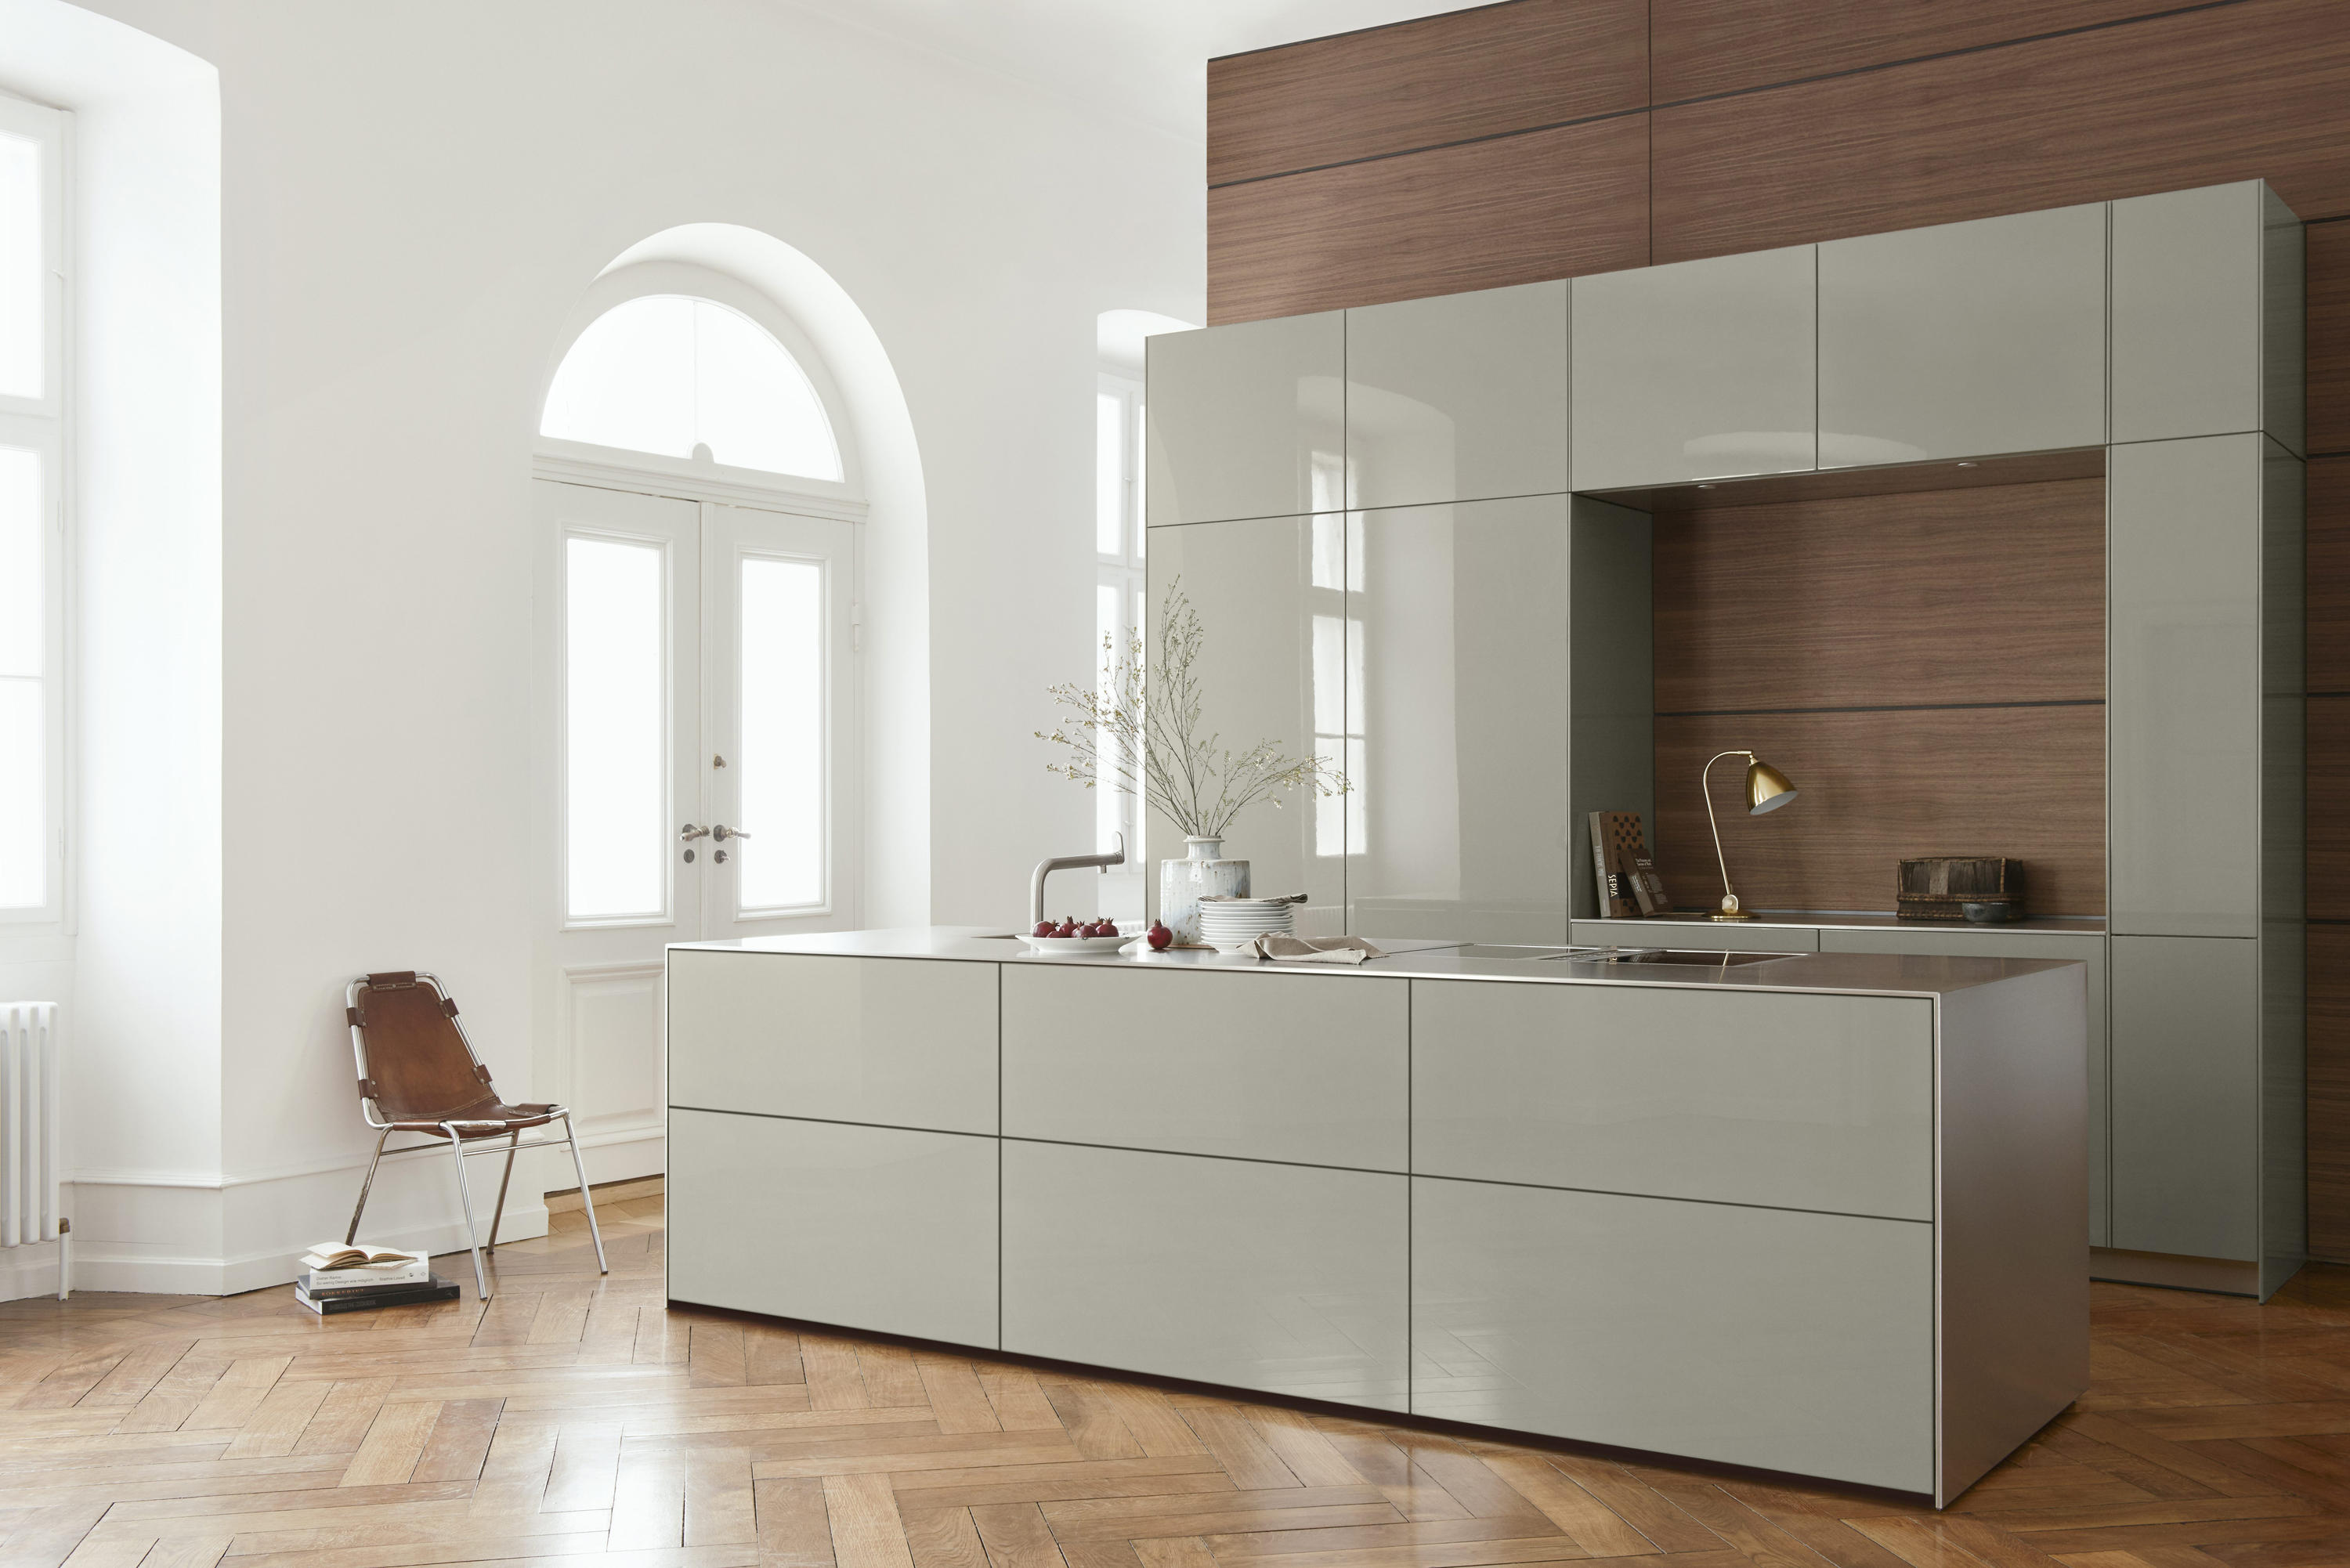 Bulthaup Bodenkirchen B3 Monoblock In Stainless Steel Fitted Kitchens From